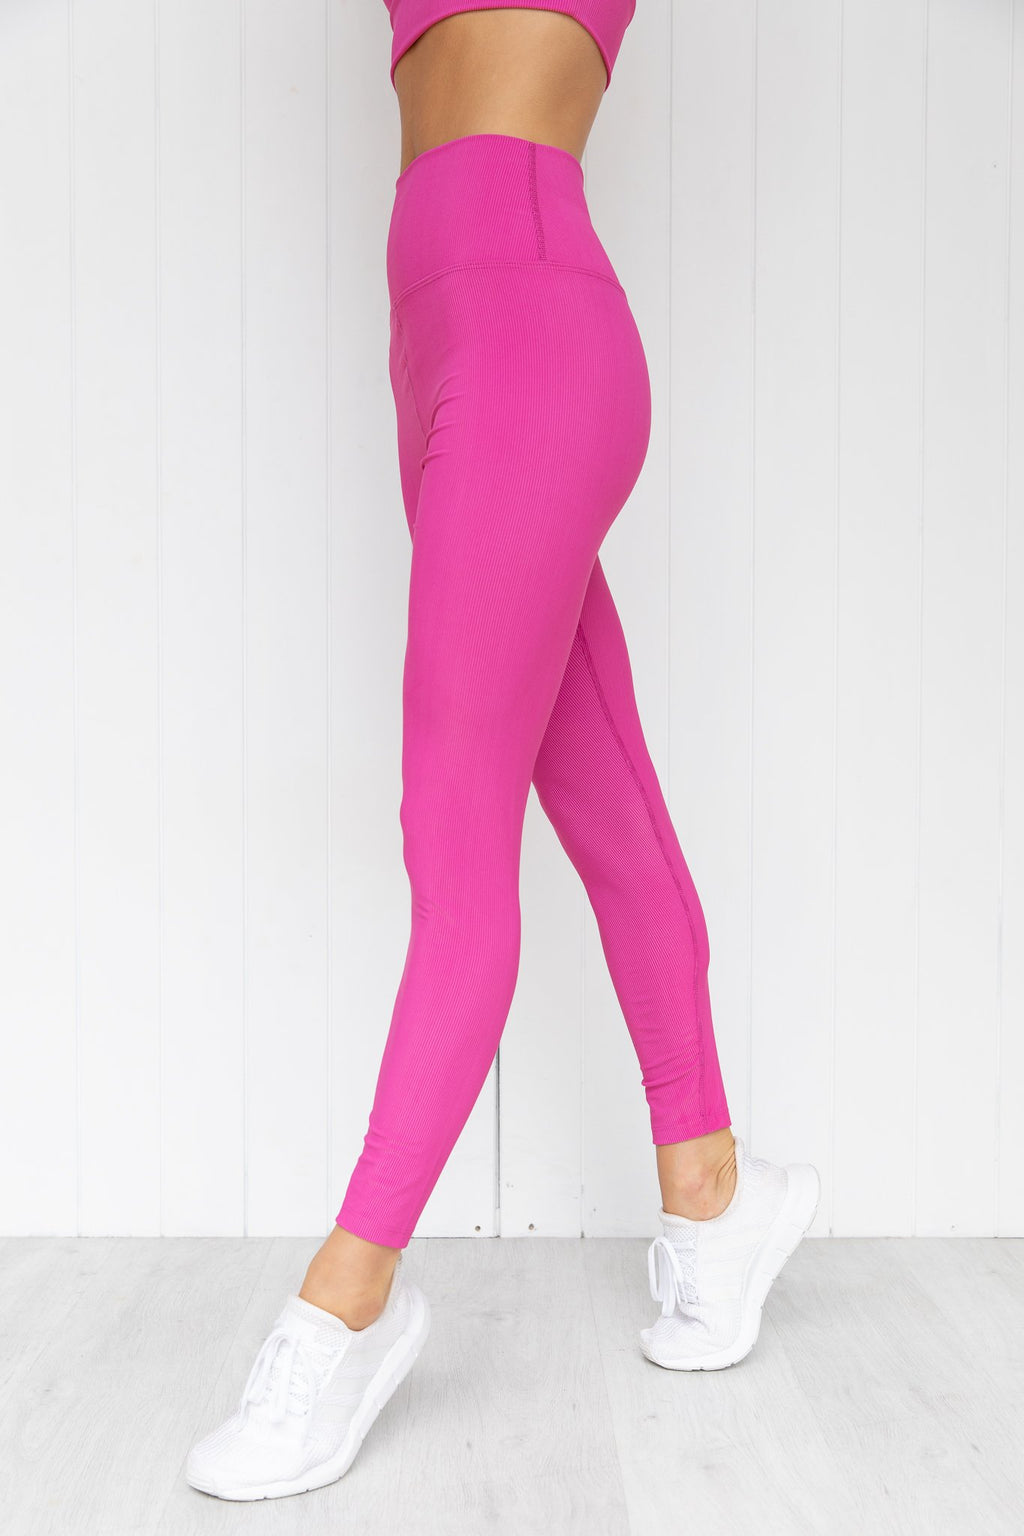 Ribbed High Waist Leggings - Hot Pink - PURE DASH